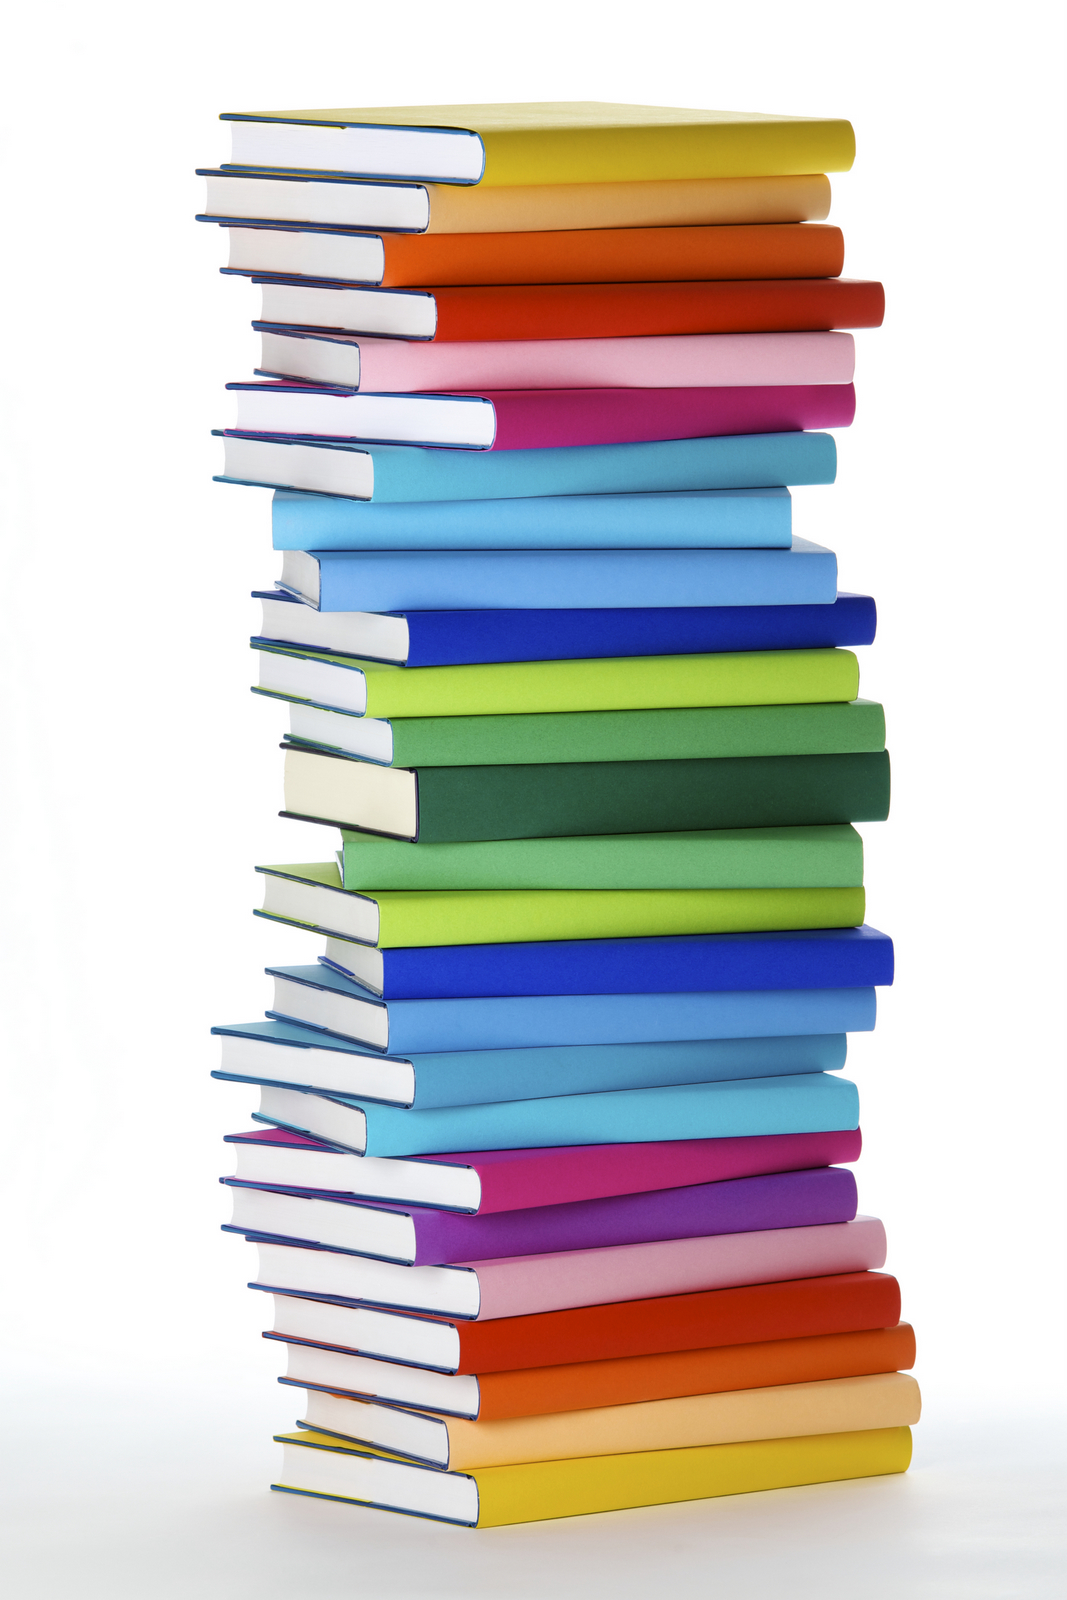 Clipart book stack.